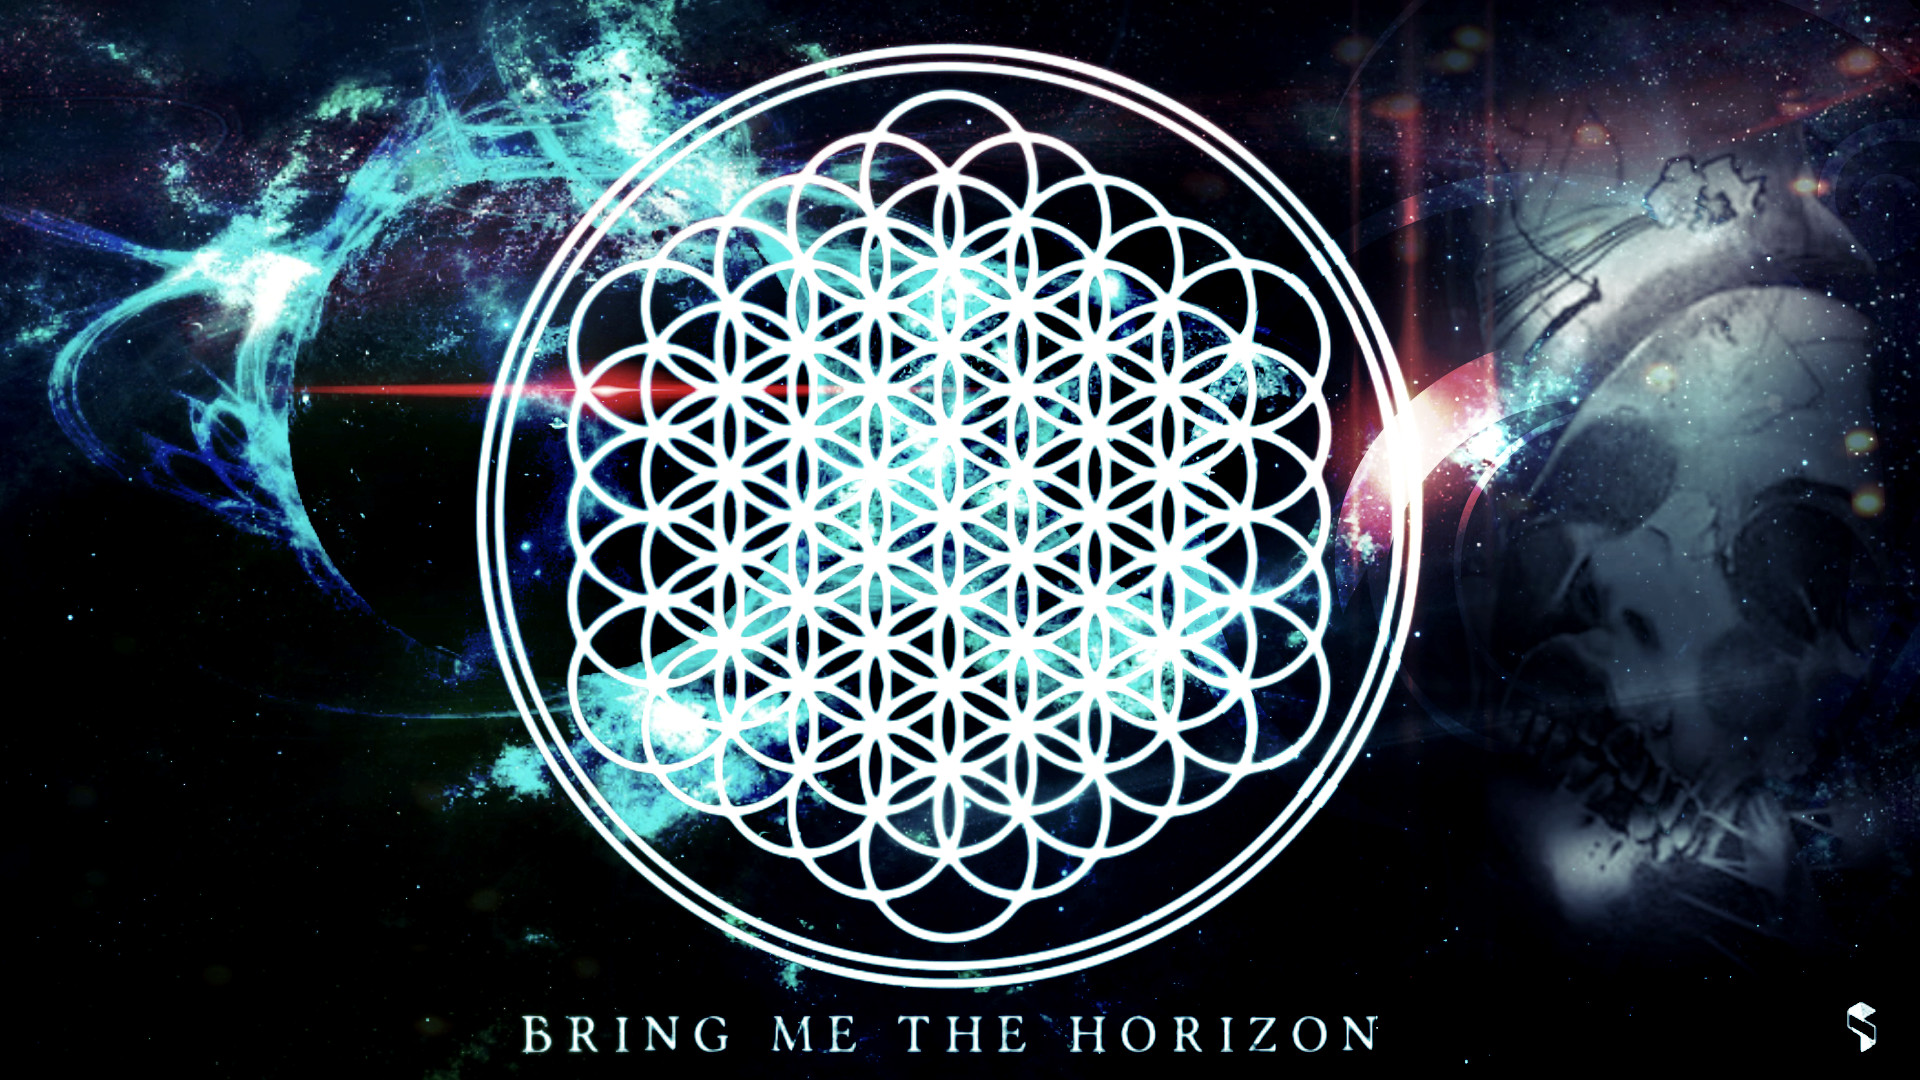 3840x2160 Preview wallpaper bring me the horizon, text, sign, graphics, spray 3840x2160